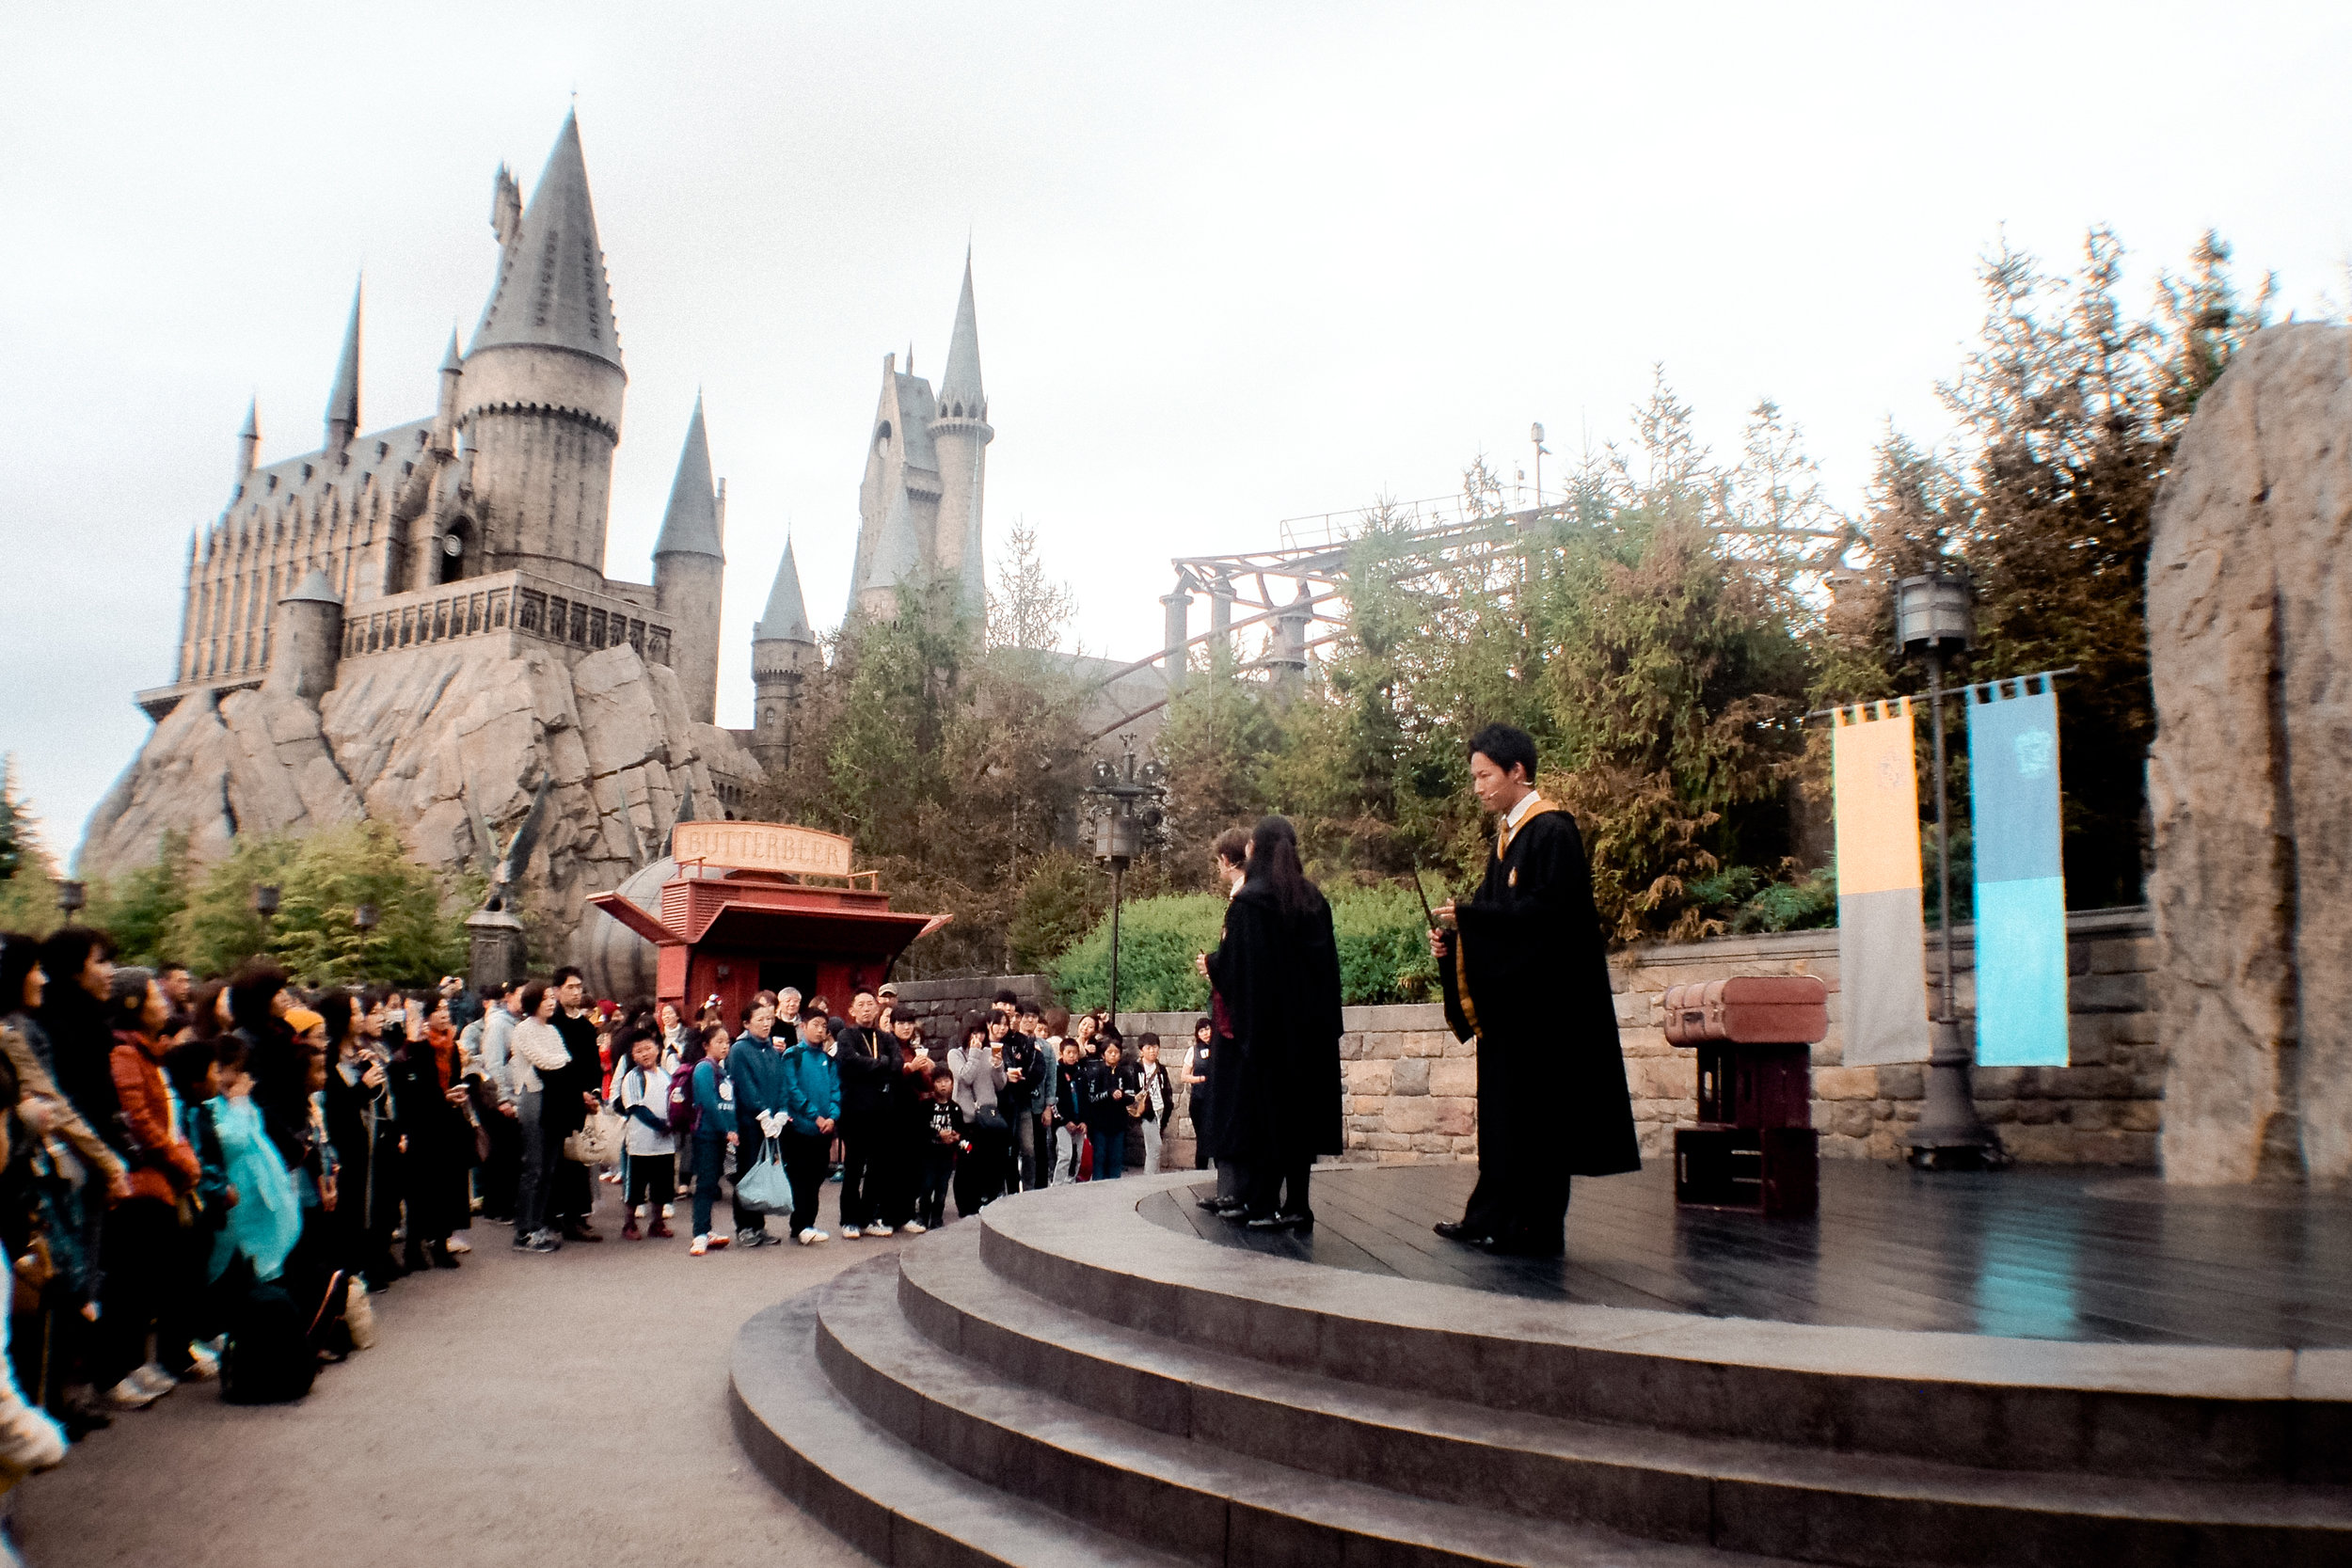 One of the performances inside the Wizarding World. It's called Wand Studies.